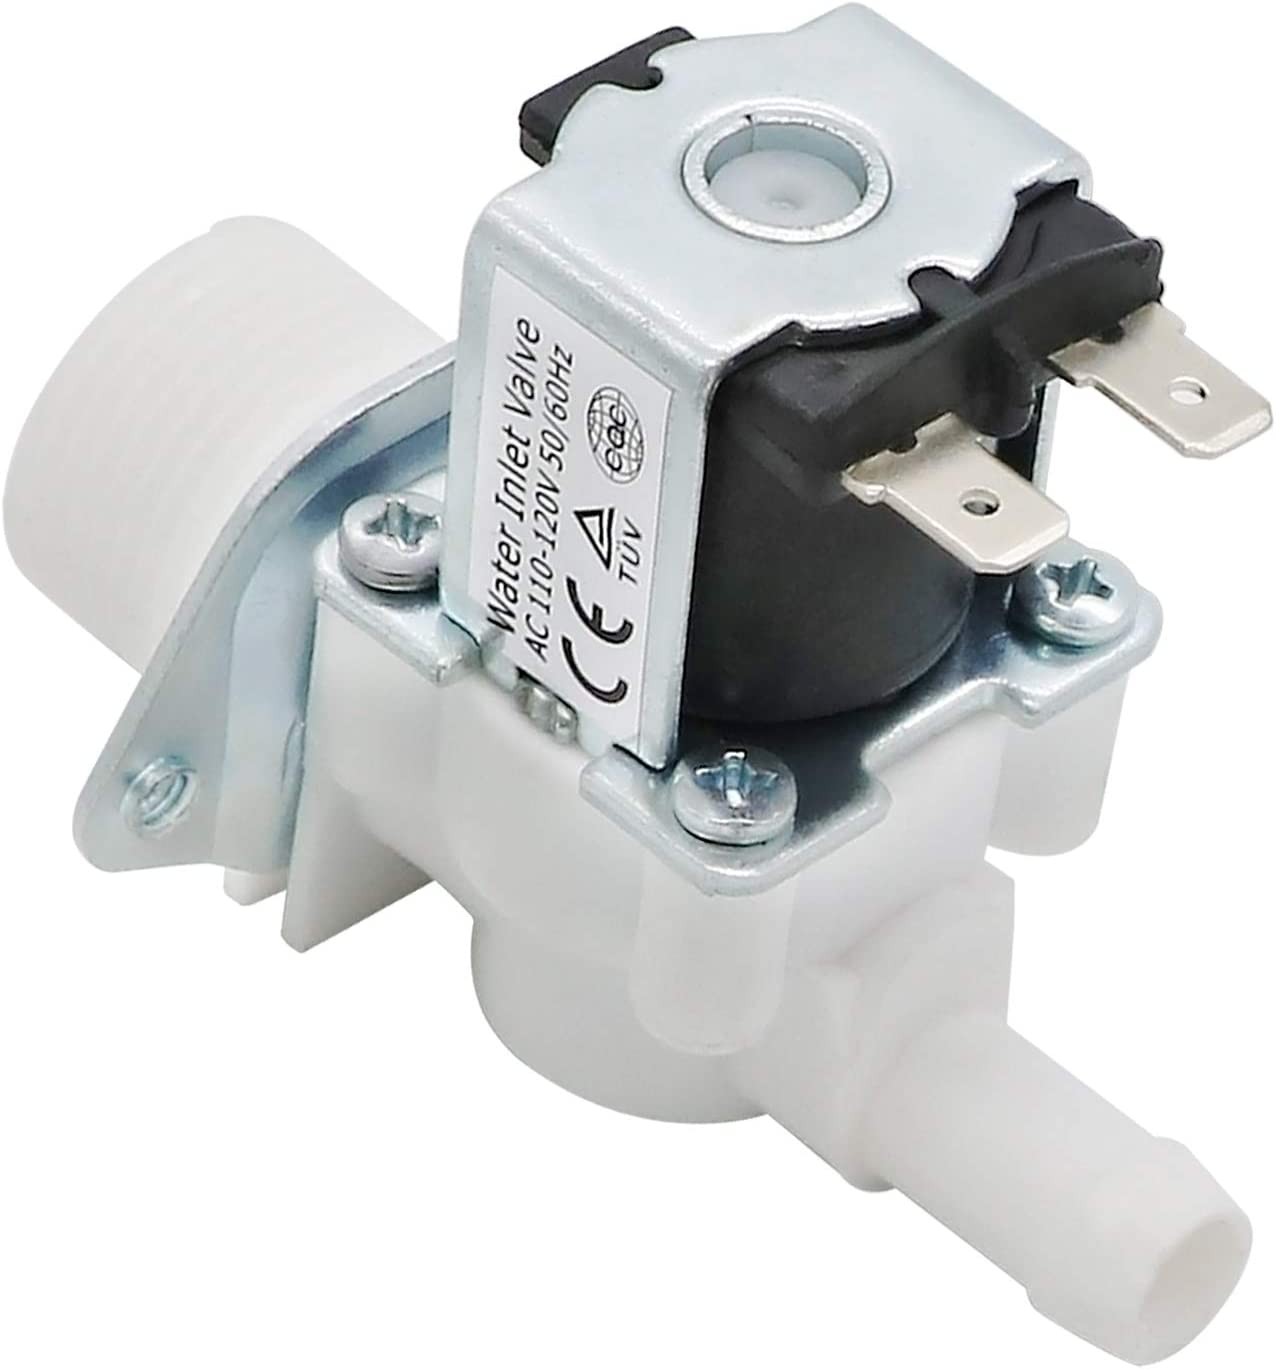 Primeswift 5220FR2006H Water Inlet Valve(Hot) Replacement for Kenmore LG Washing Machine,Replaces 5220FR2006L 5220FR2006Q AP4441935